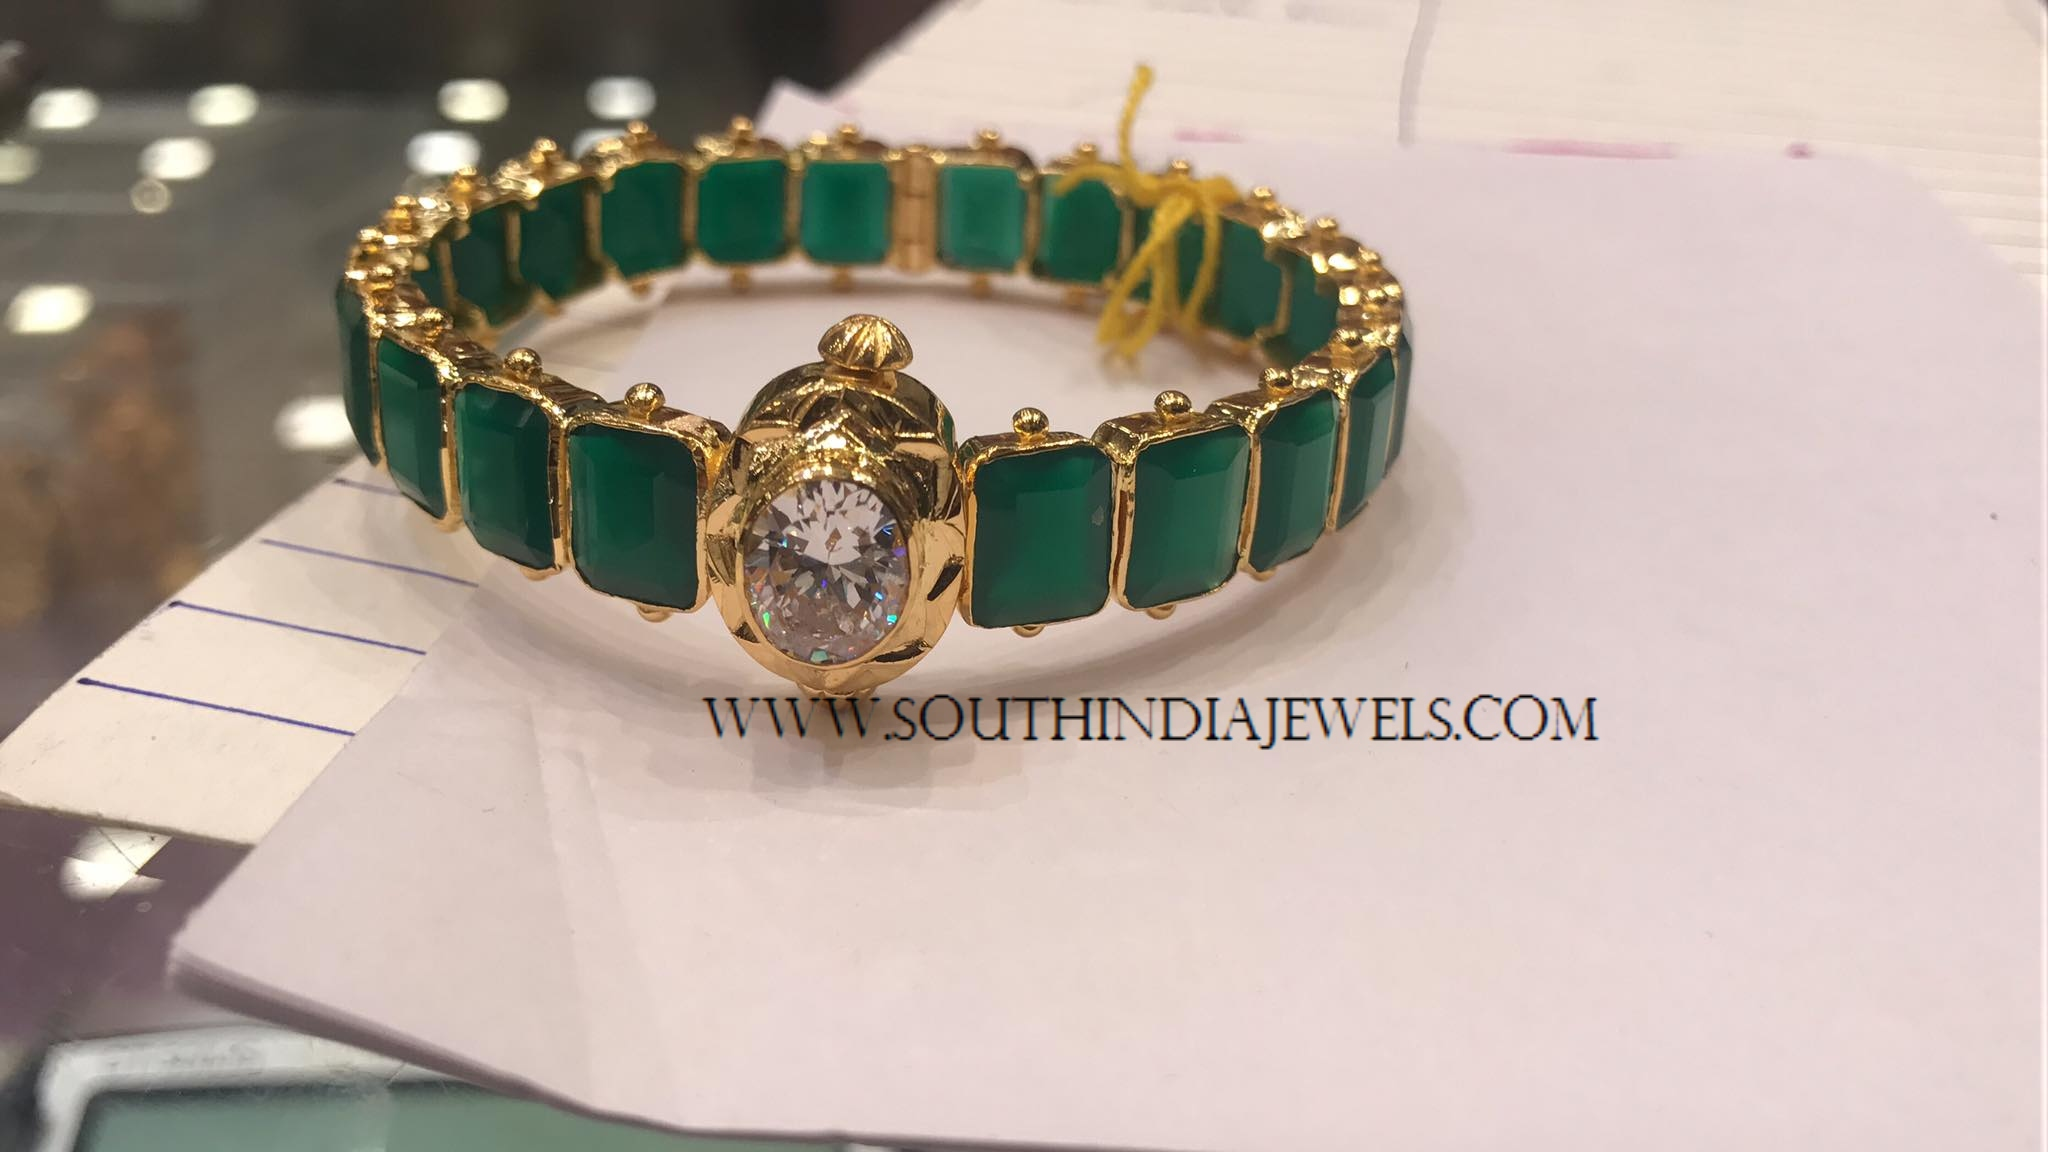 bangle zev bangles diamond exquisite emerald raj gala jewels